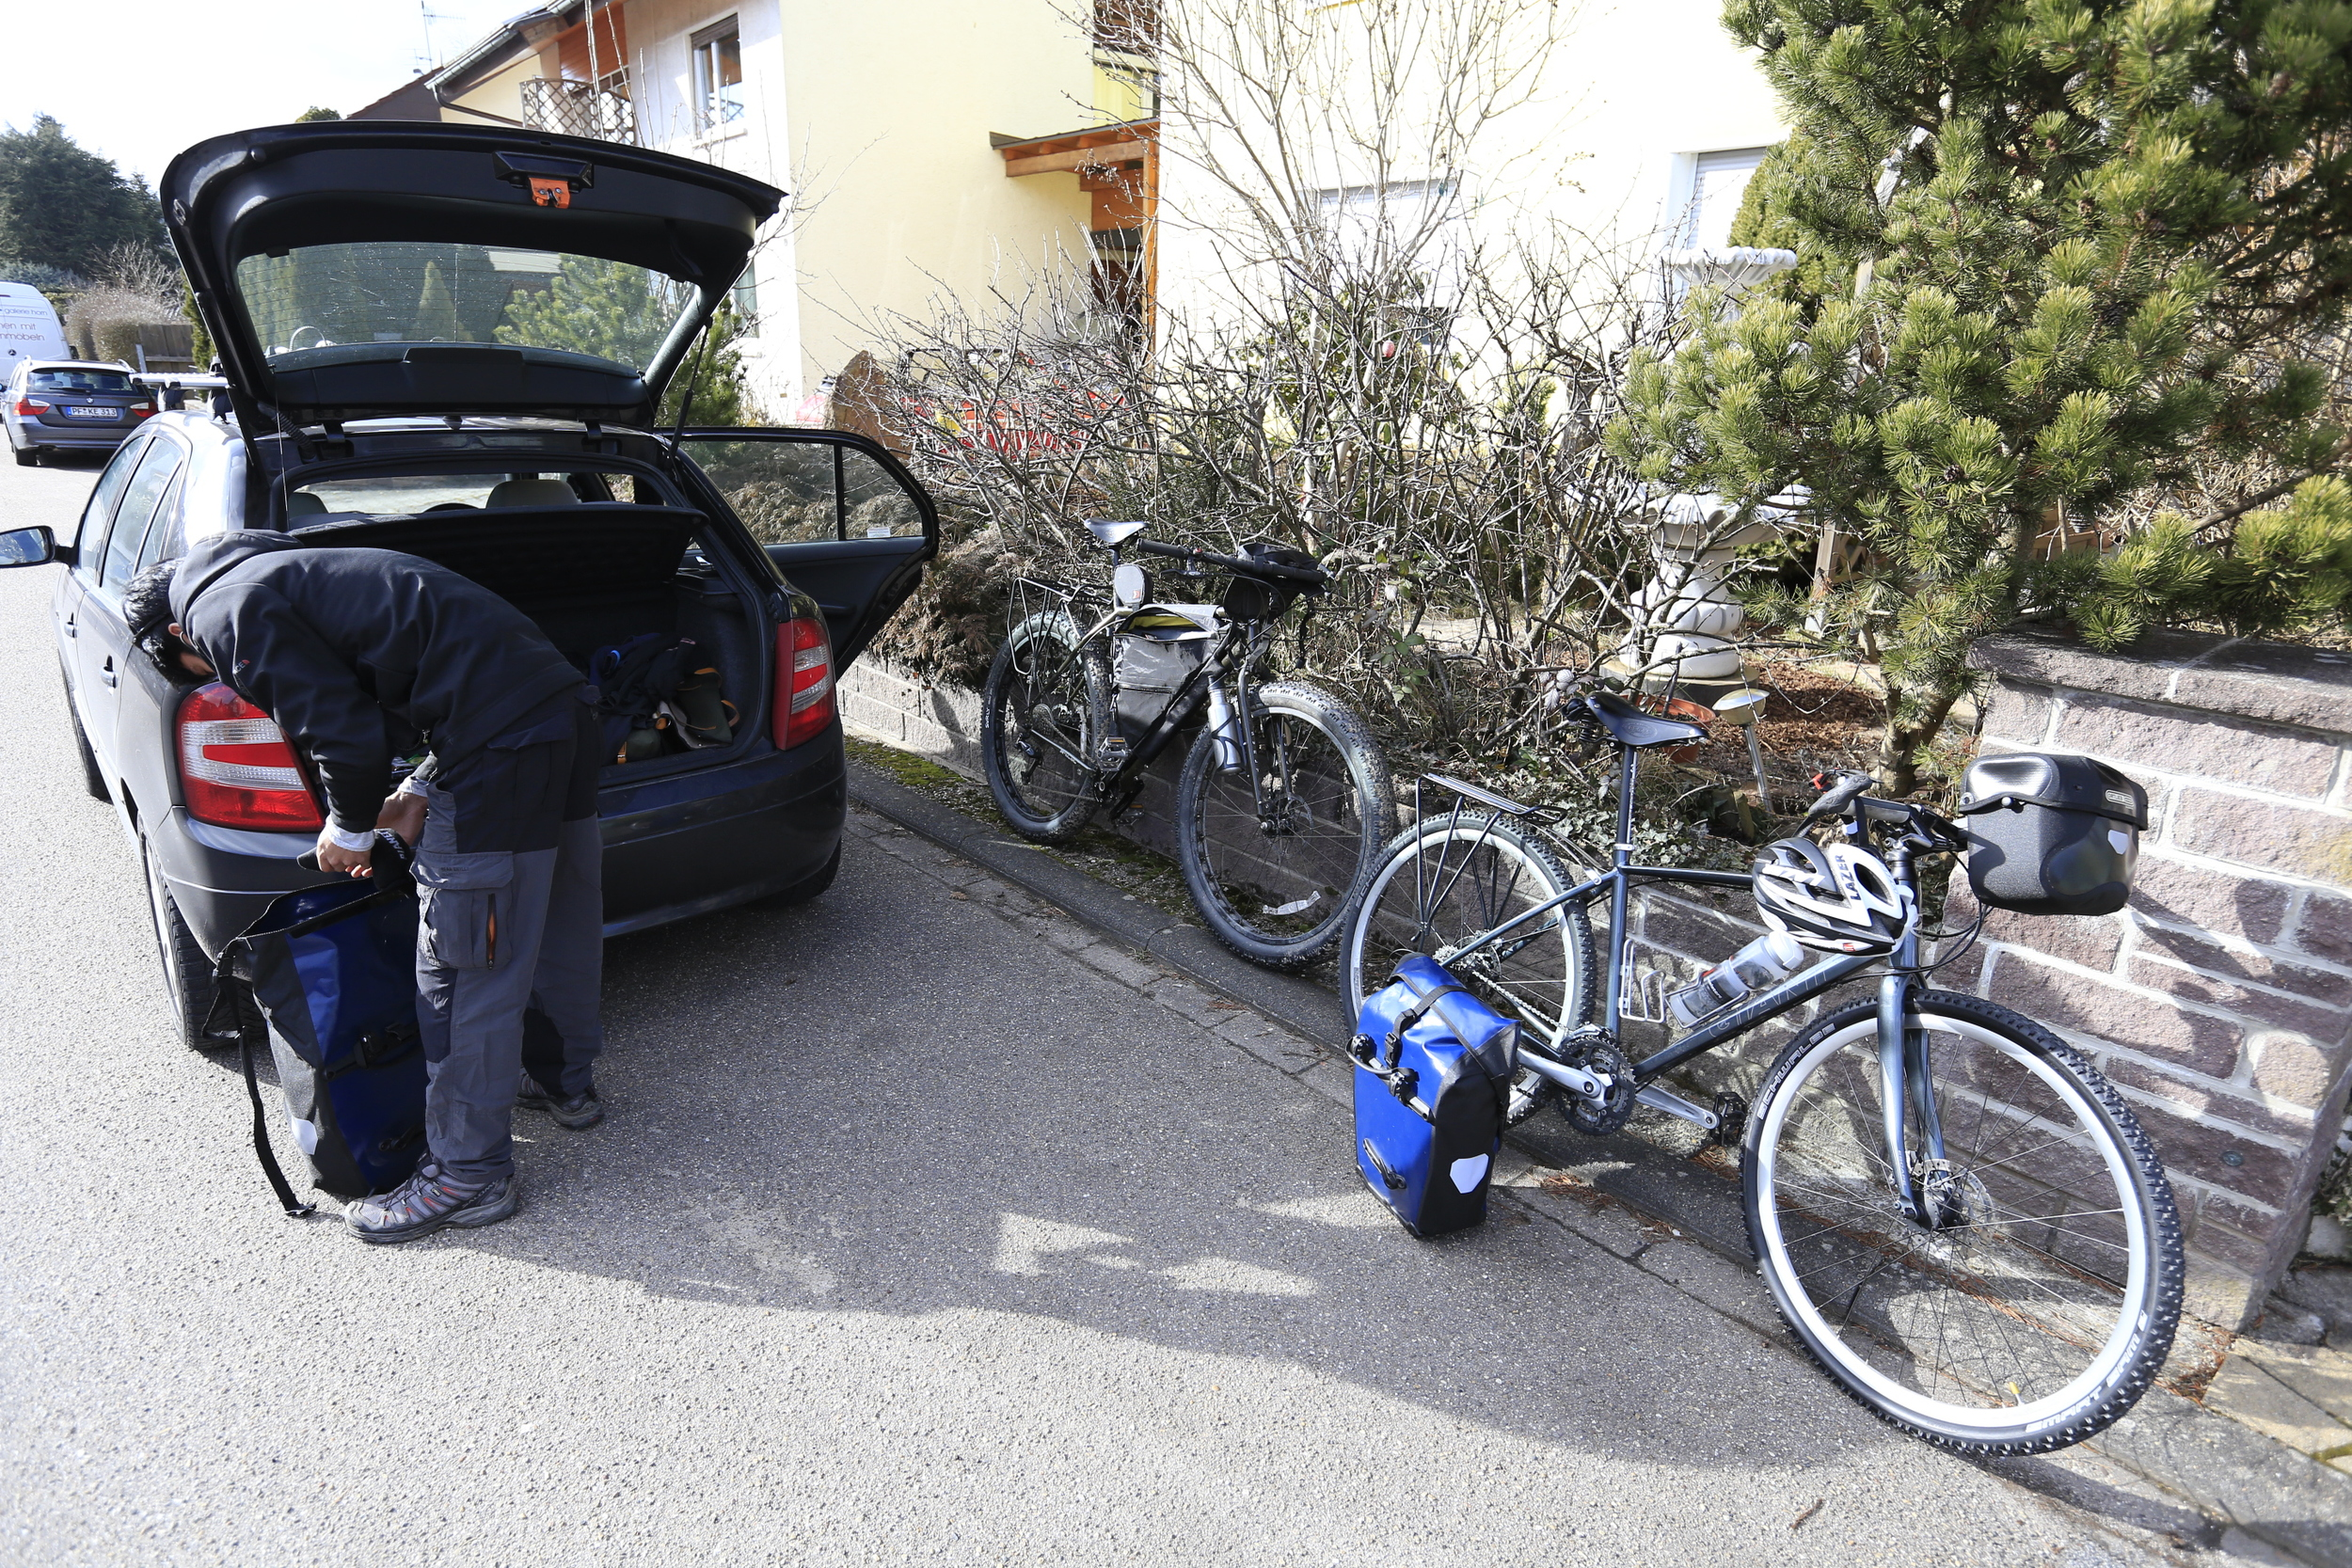 Loading up the bikes.